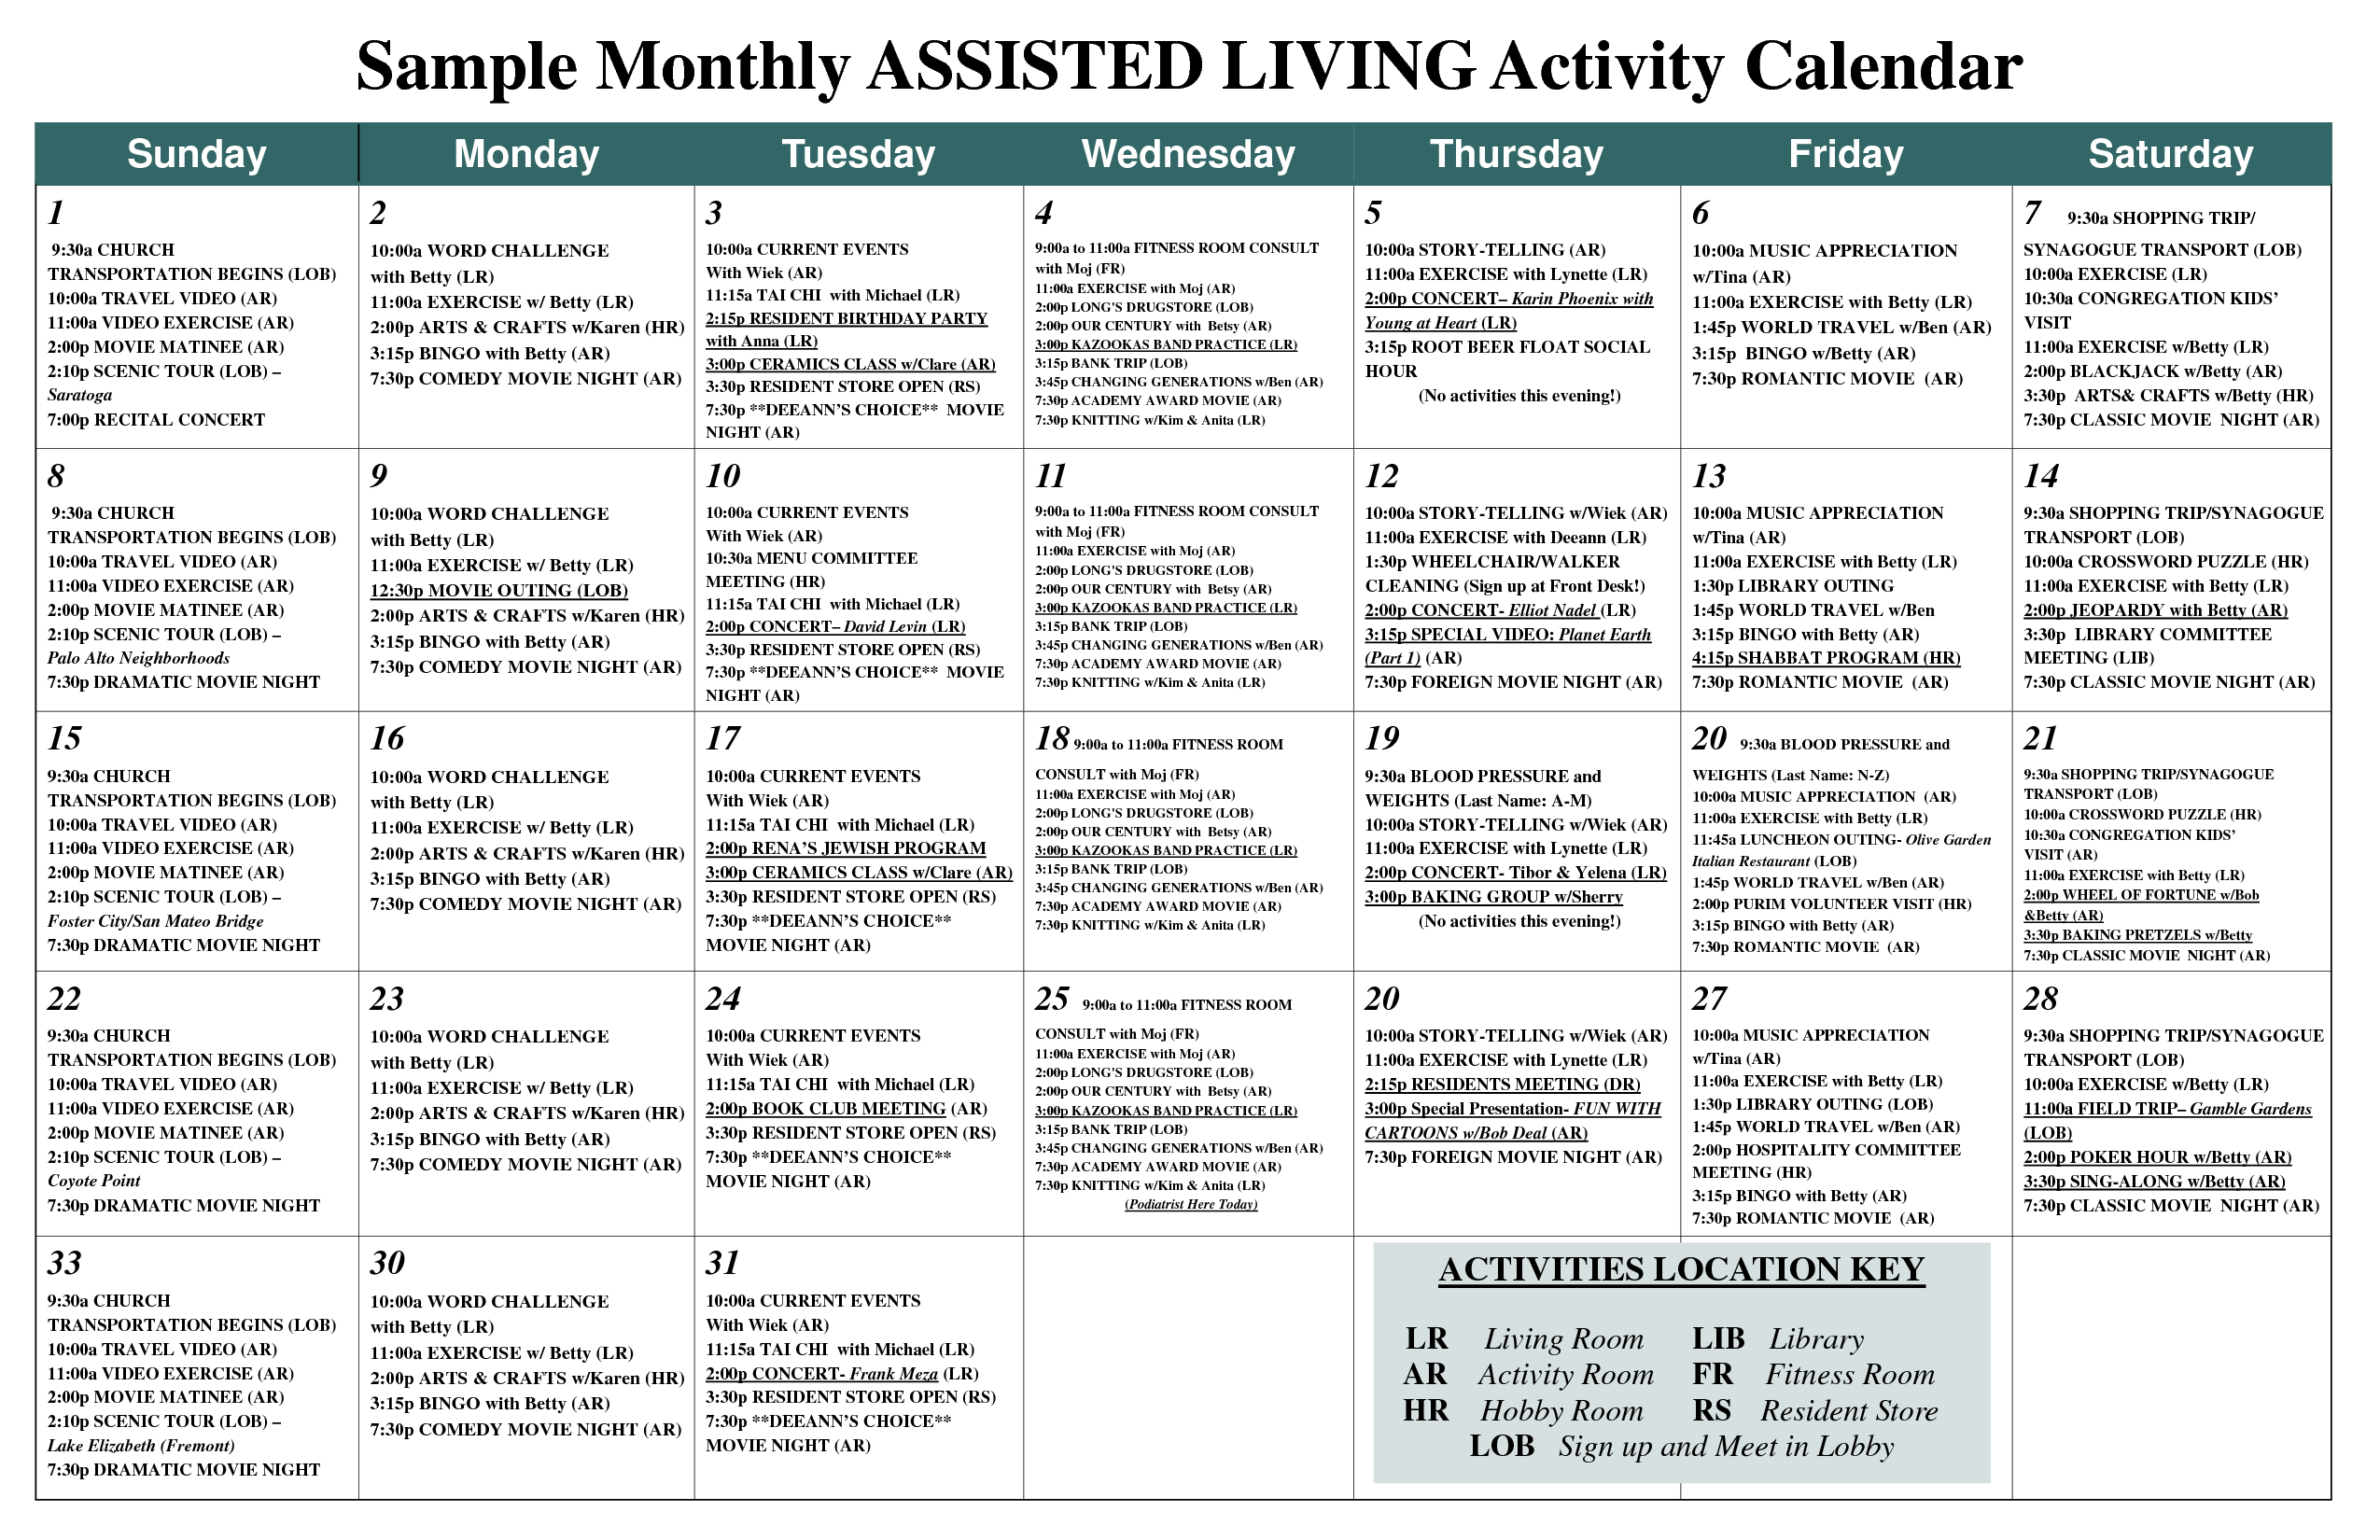 Not Just Bingo | Senior Living Activities, Nursing Home Regarding Assisted Living Activity Calendar Ideas